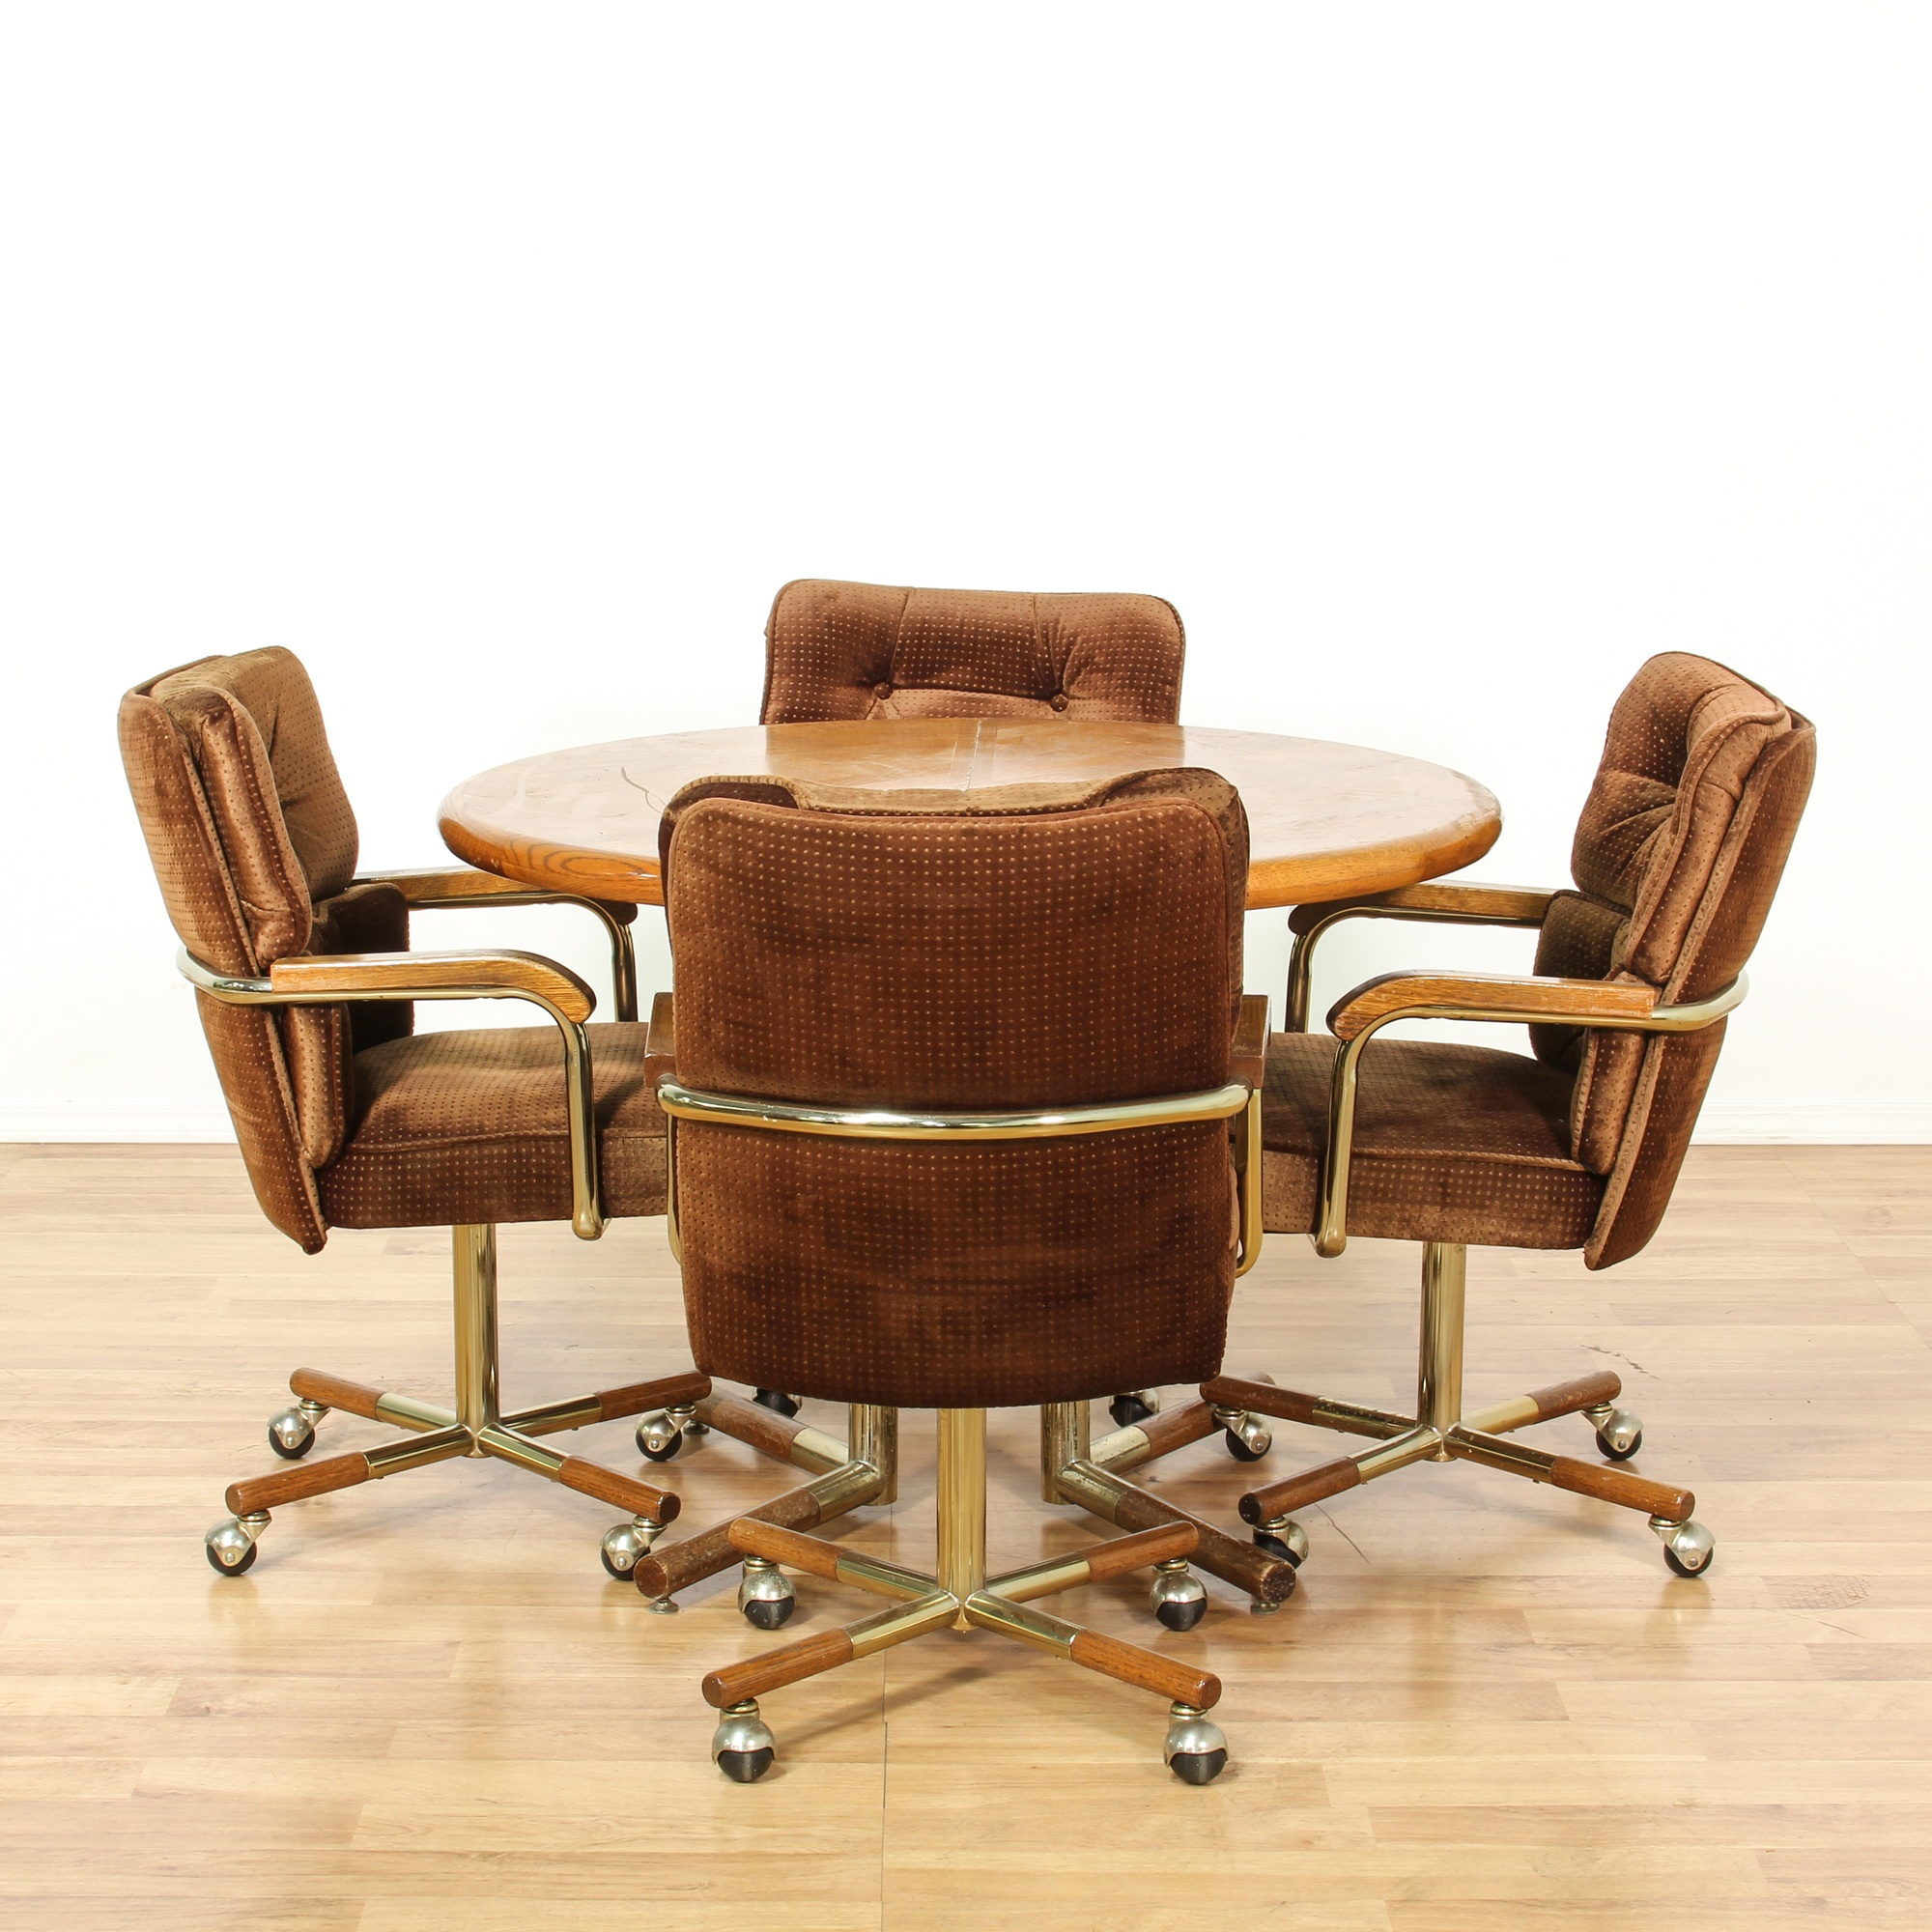 rolling dinette chairs mid century modern dining set w 4 rolling chairs 1983